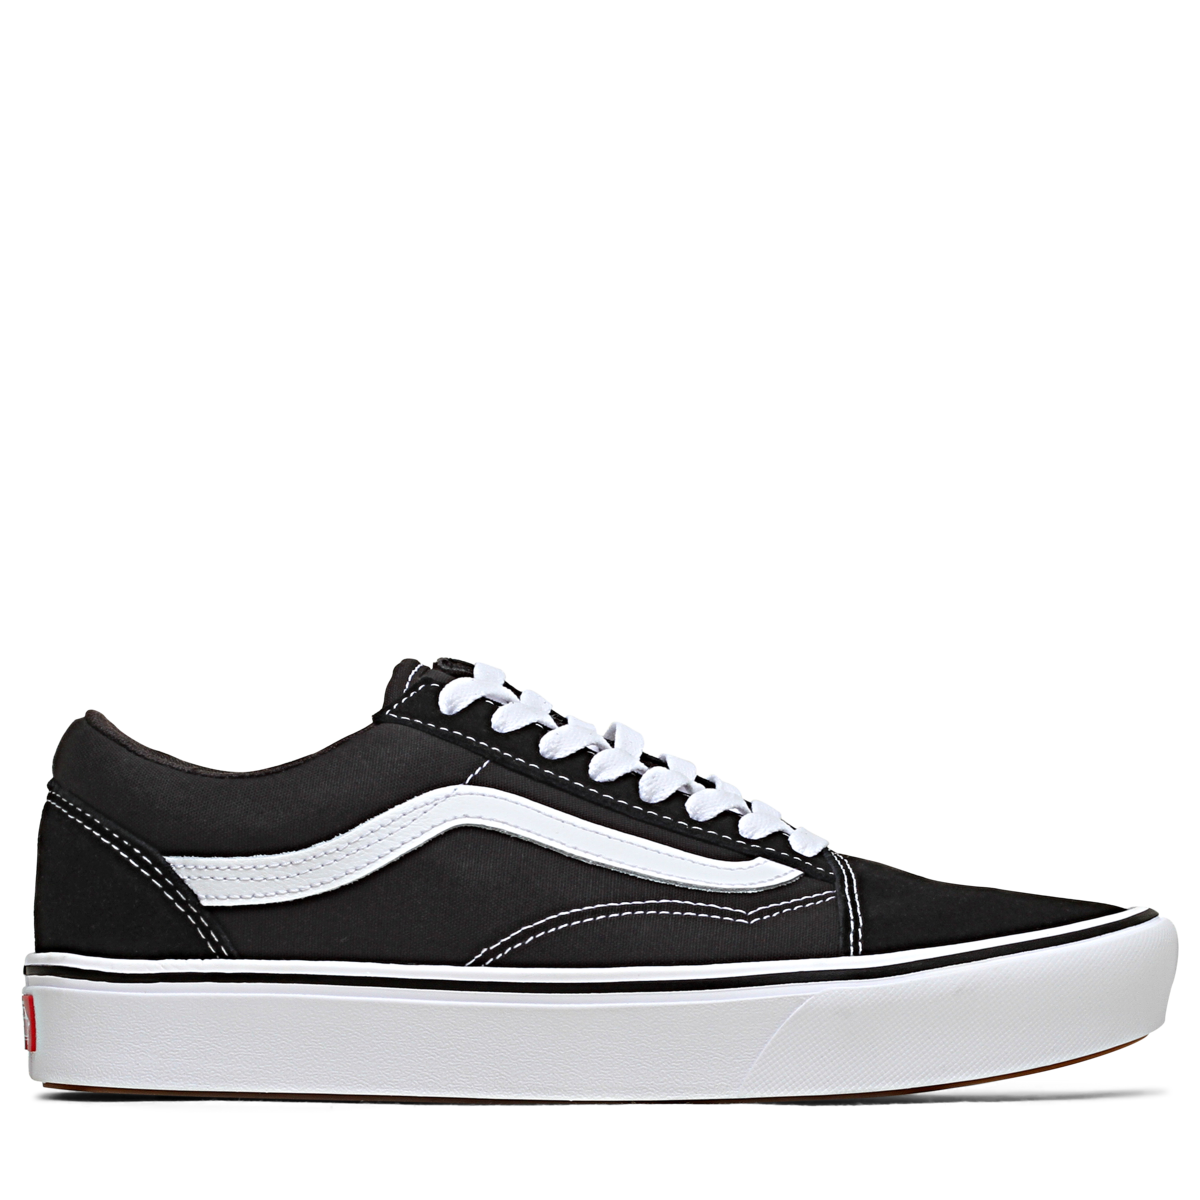 Vans - ComfyCush Old Skool - Sort